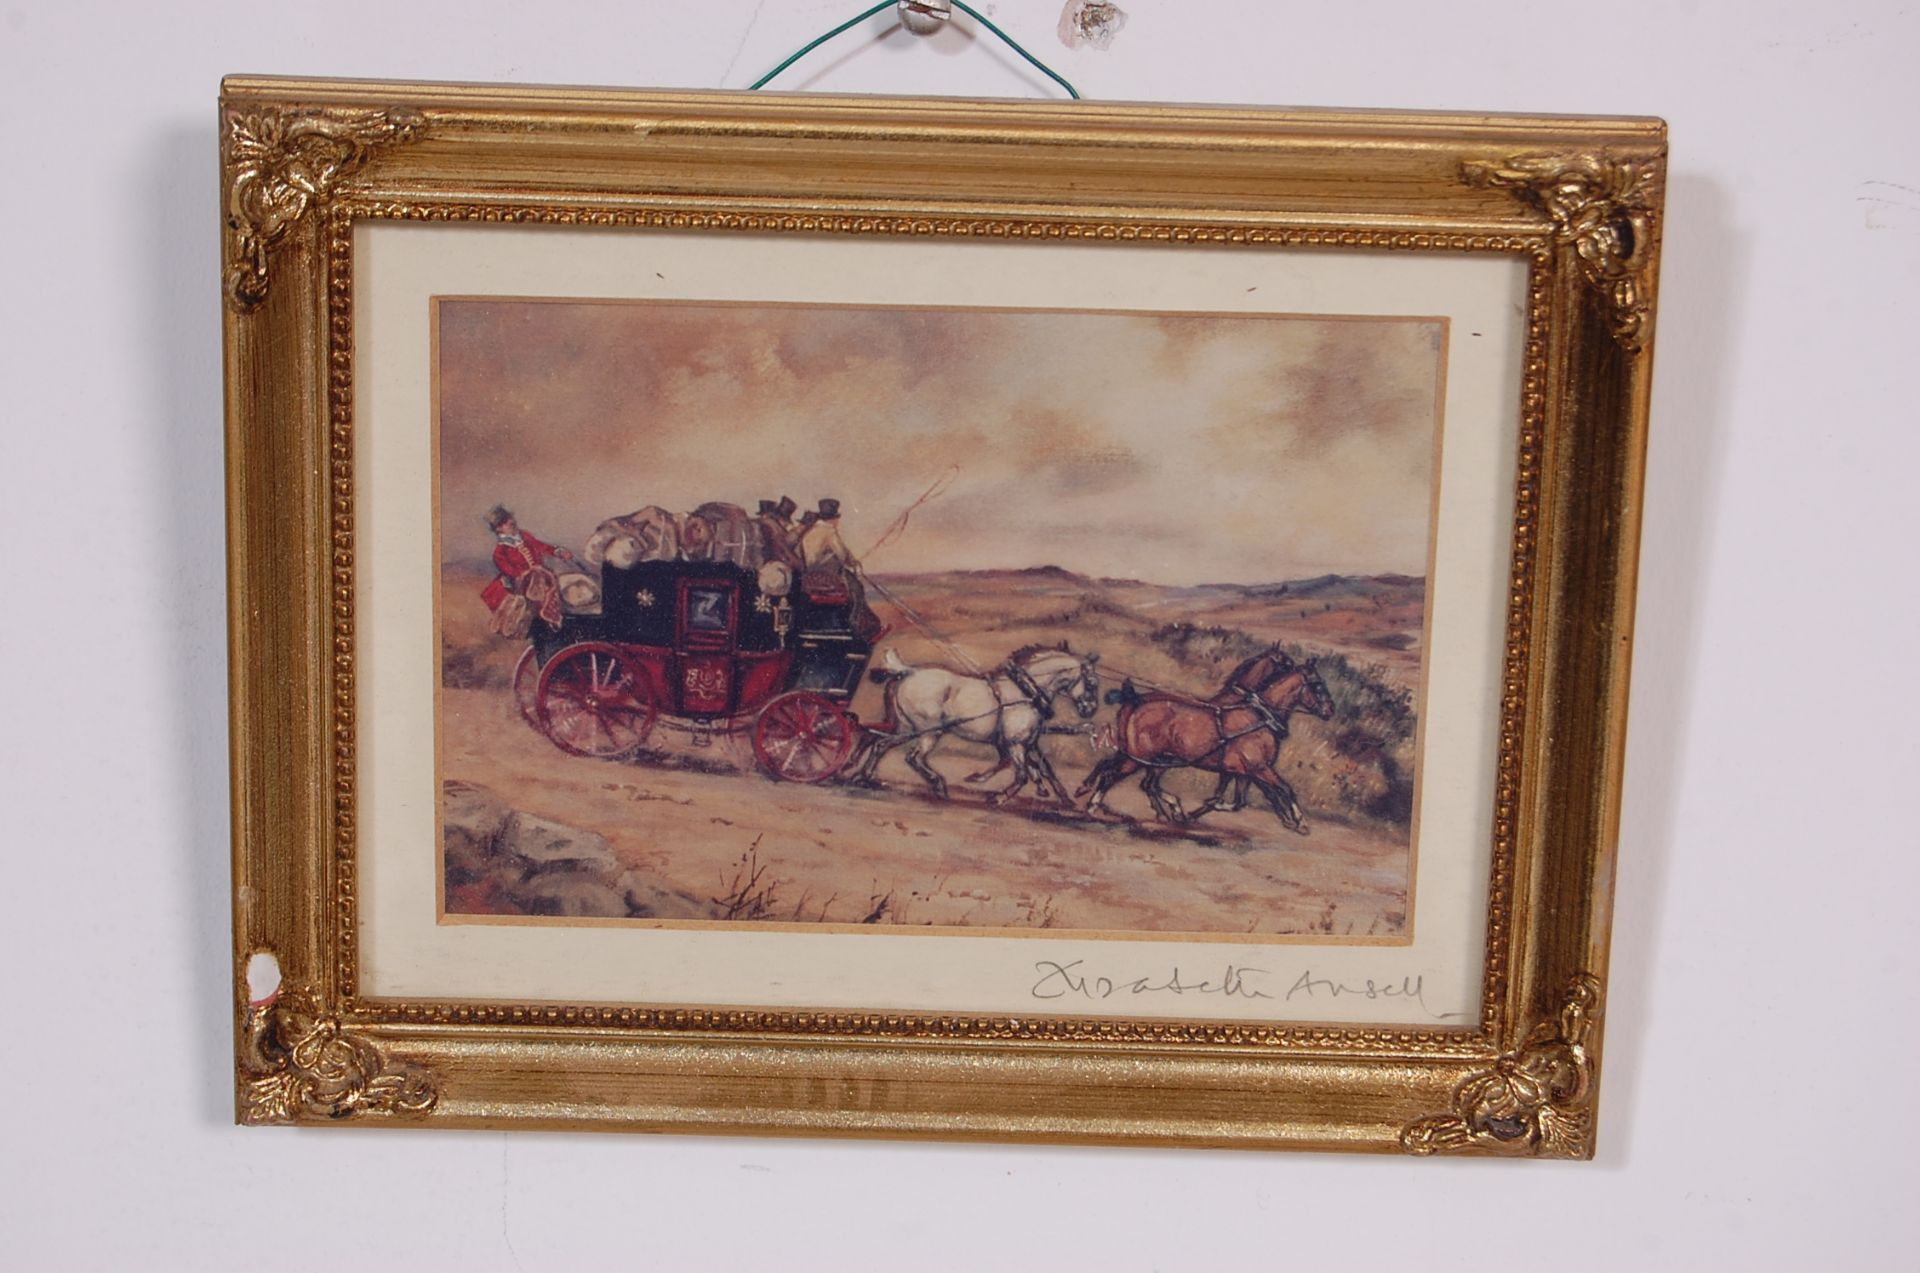 A GROUP OF SEVEN ROYAL MAIL LITHOGRAPH PRINTS DEPICTING 19TH CENTURY ROAYL MAIL COACHES - Image 4 of 13